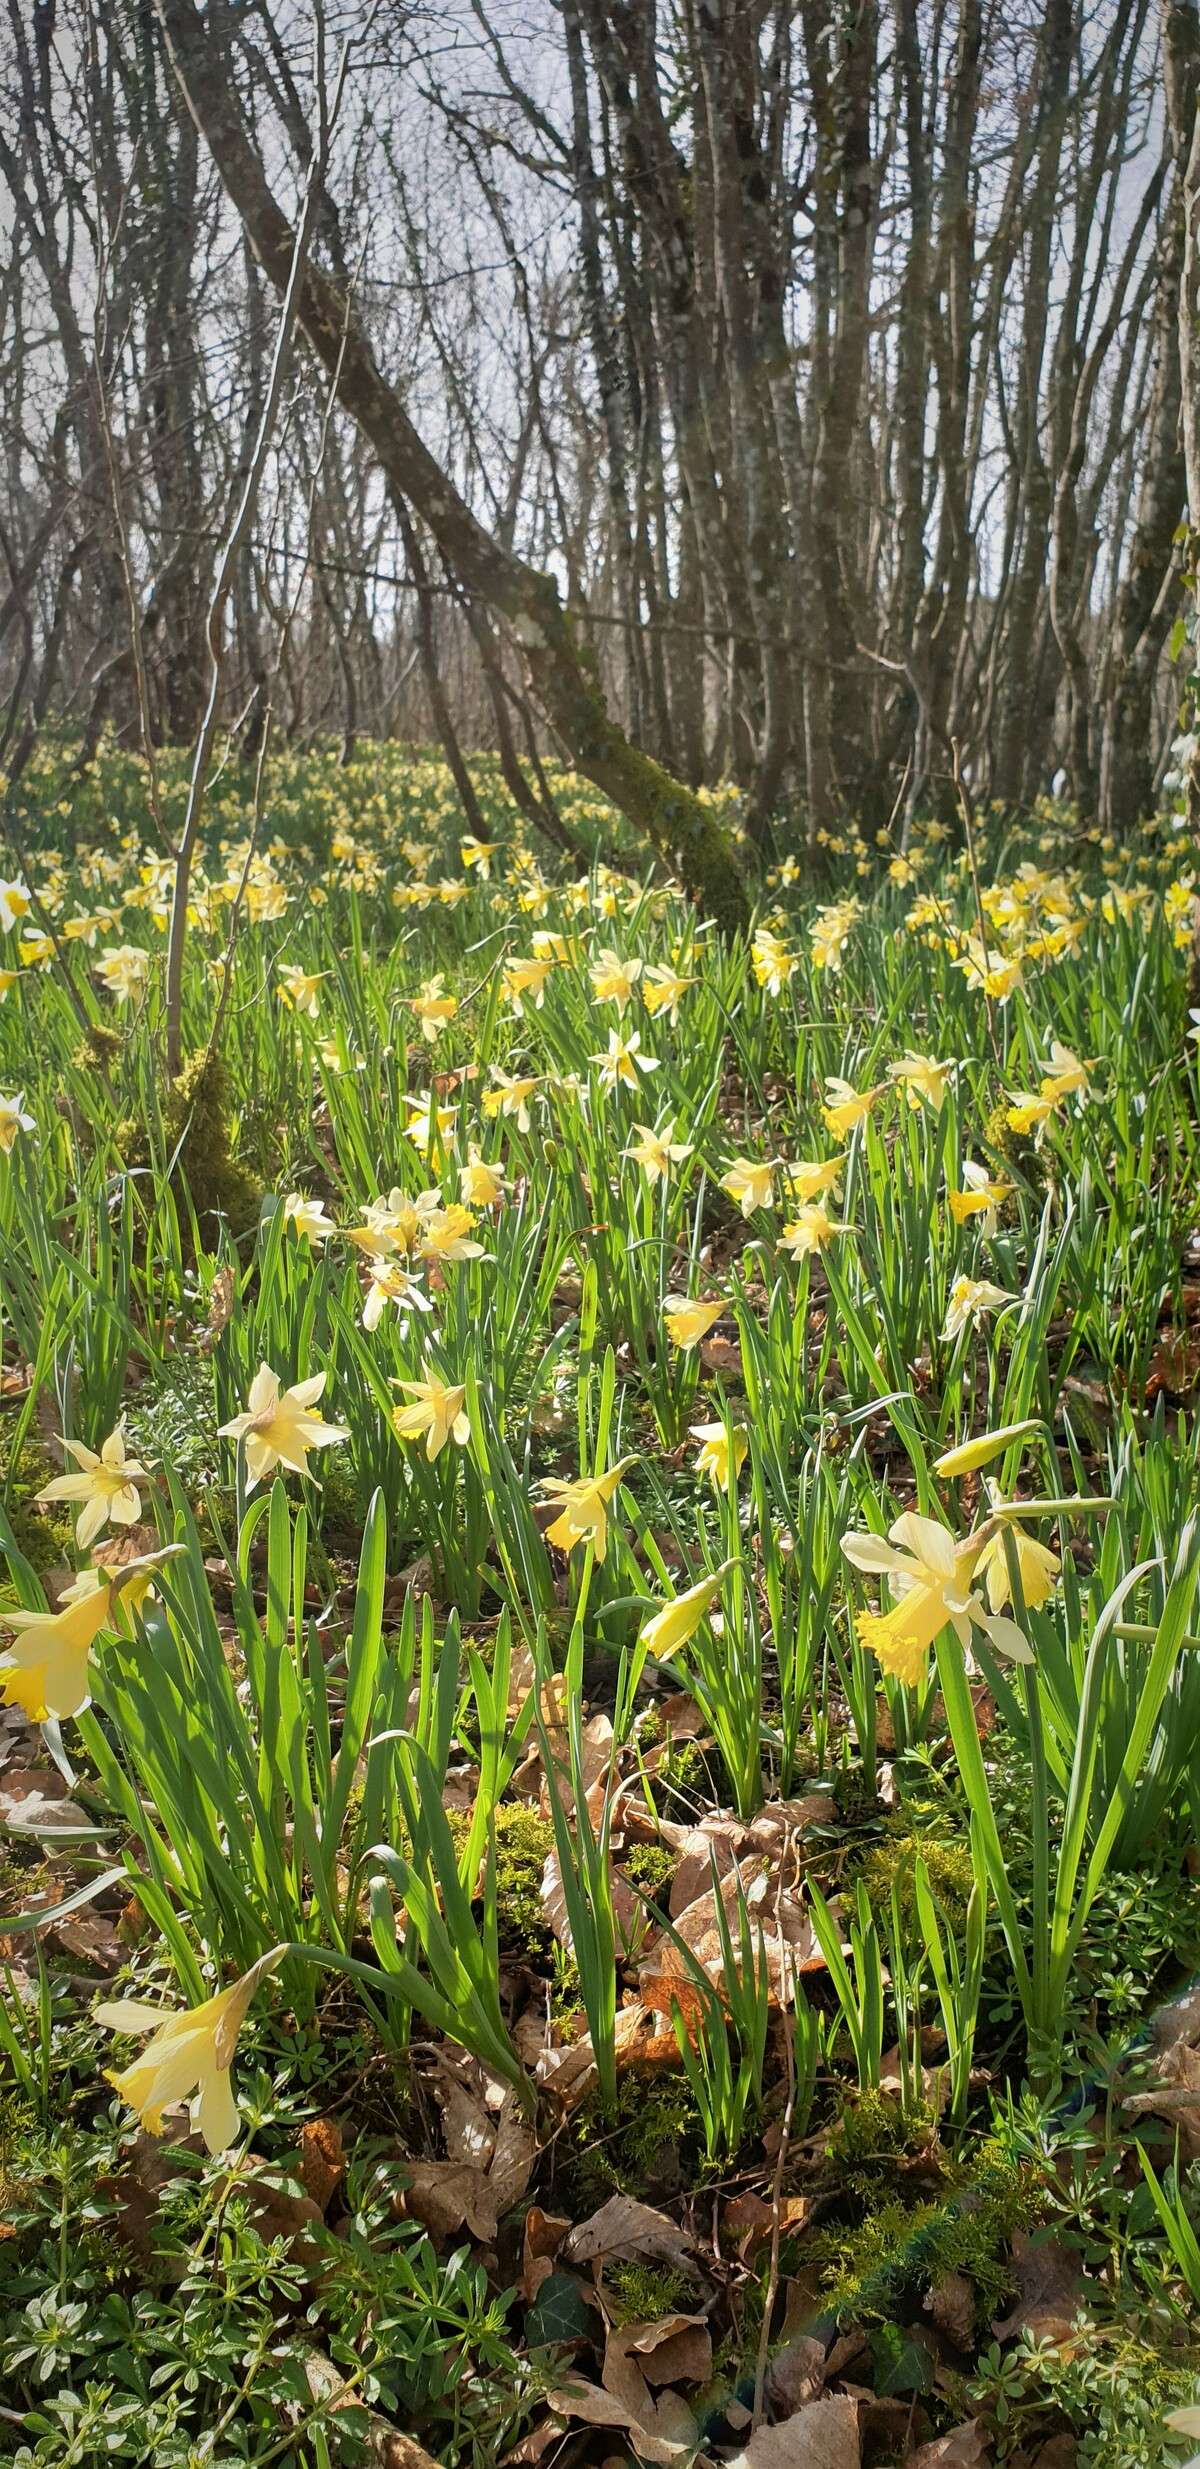 jonquilles sauvages